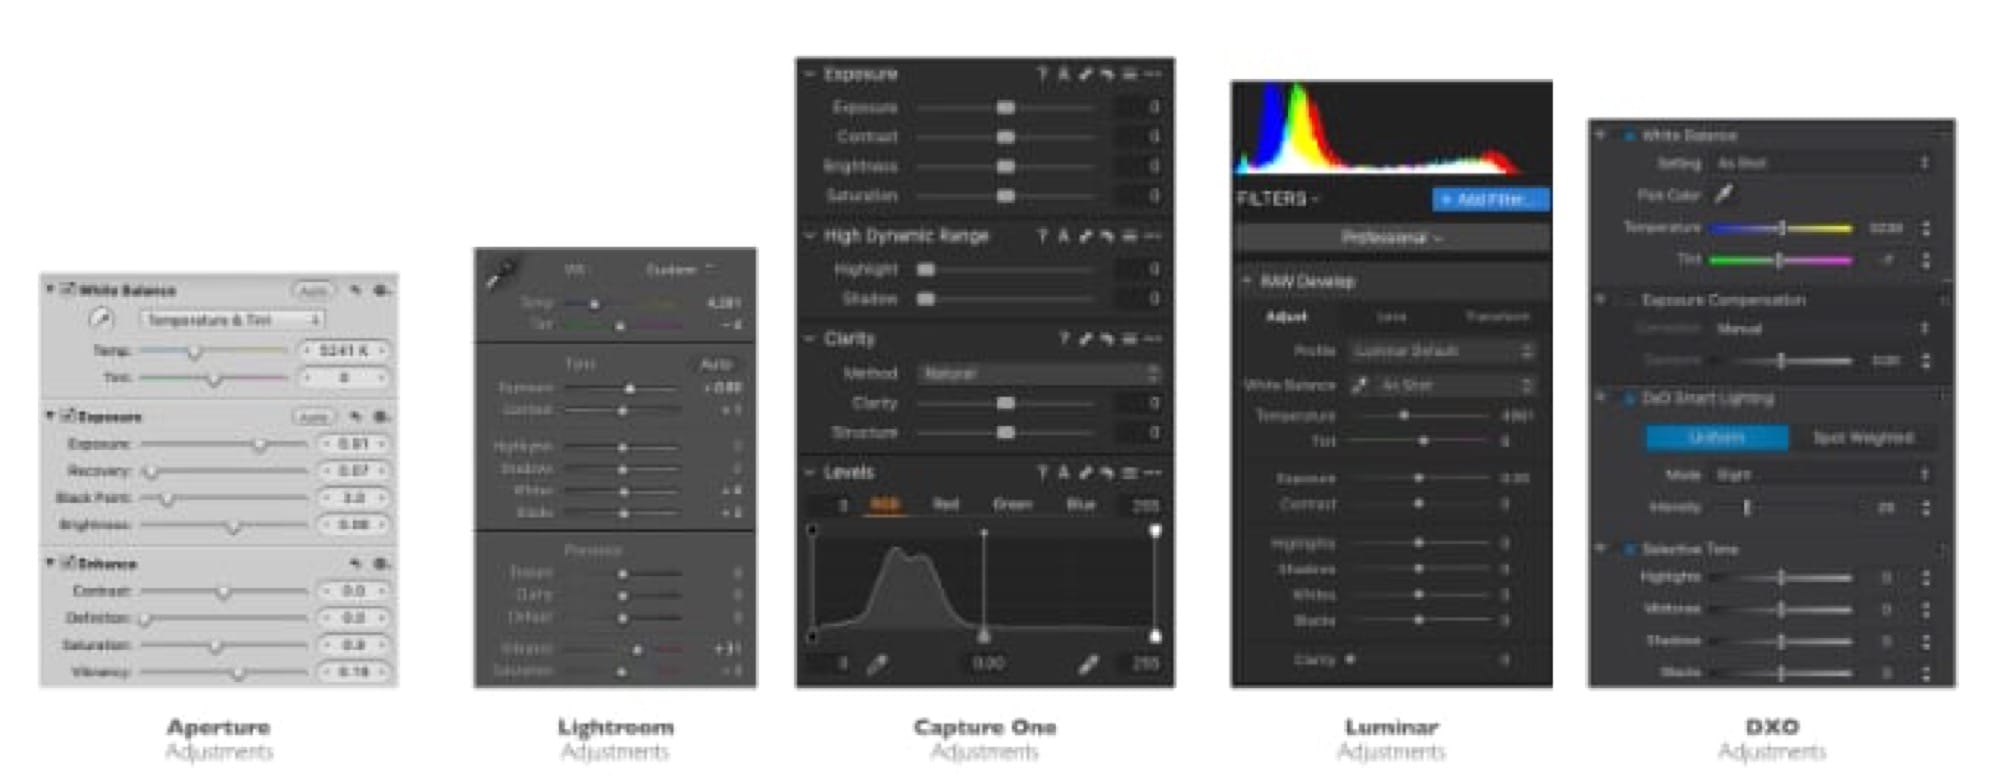 When you convert photos from Aperture to Lightroom, translation is required.